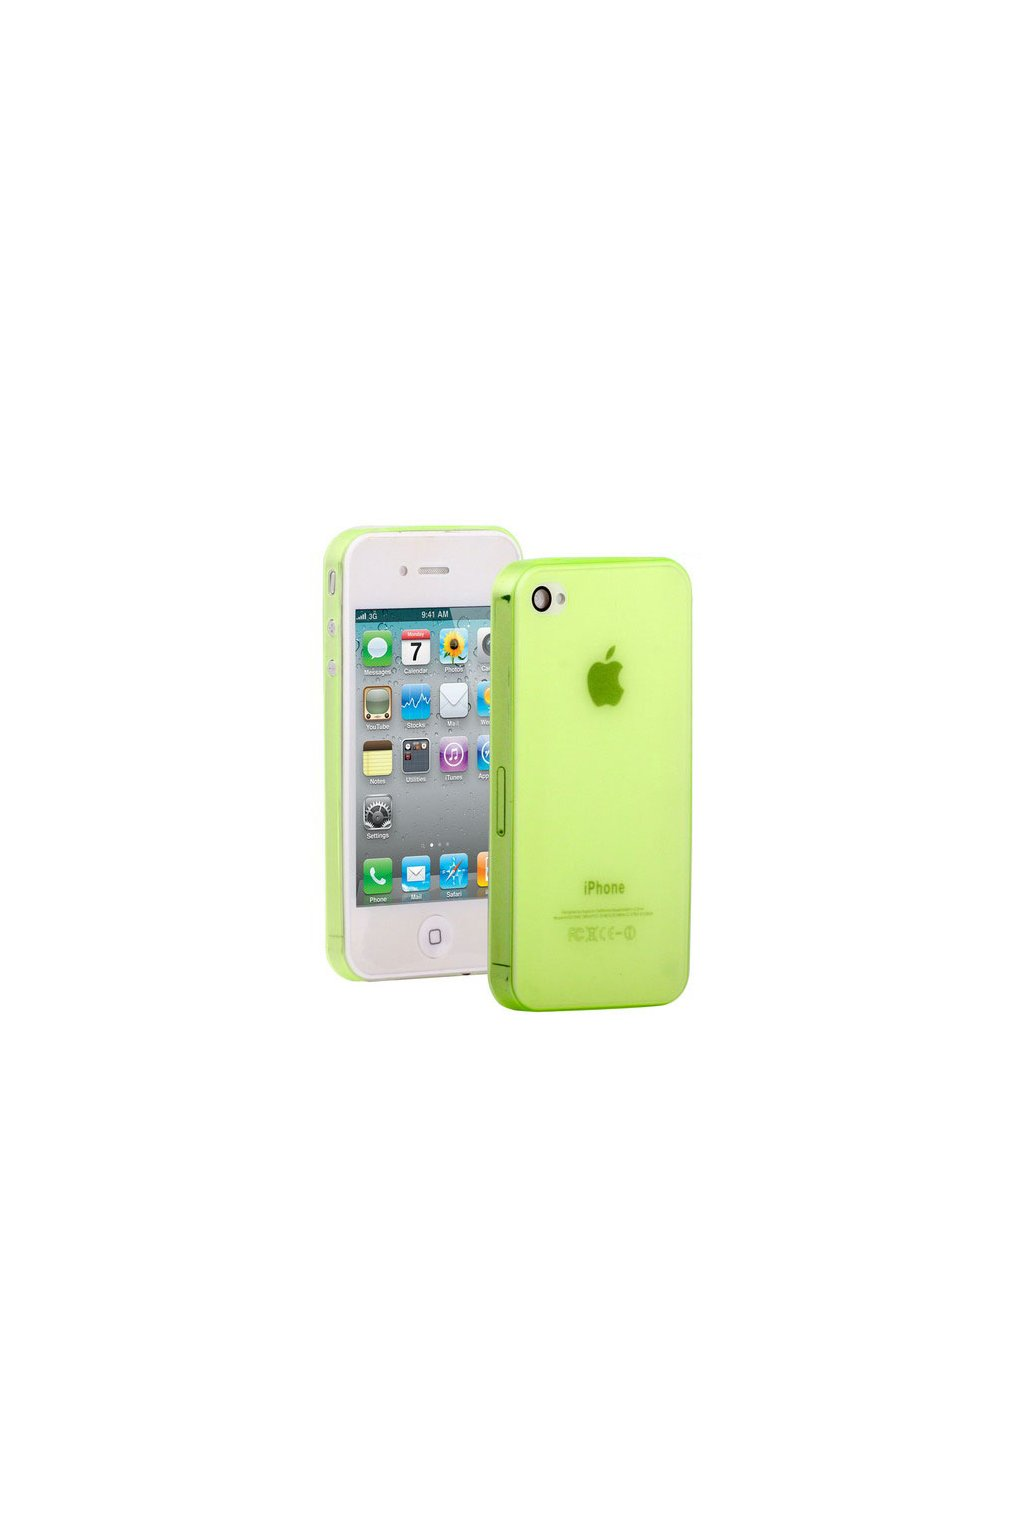 Pouzdro ultra tenké Thin iPhone 4/4S, green/zelená